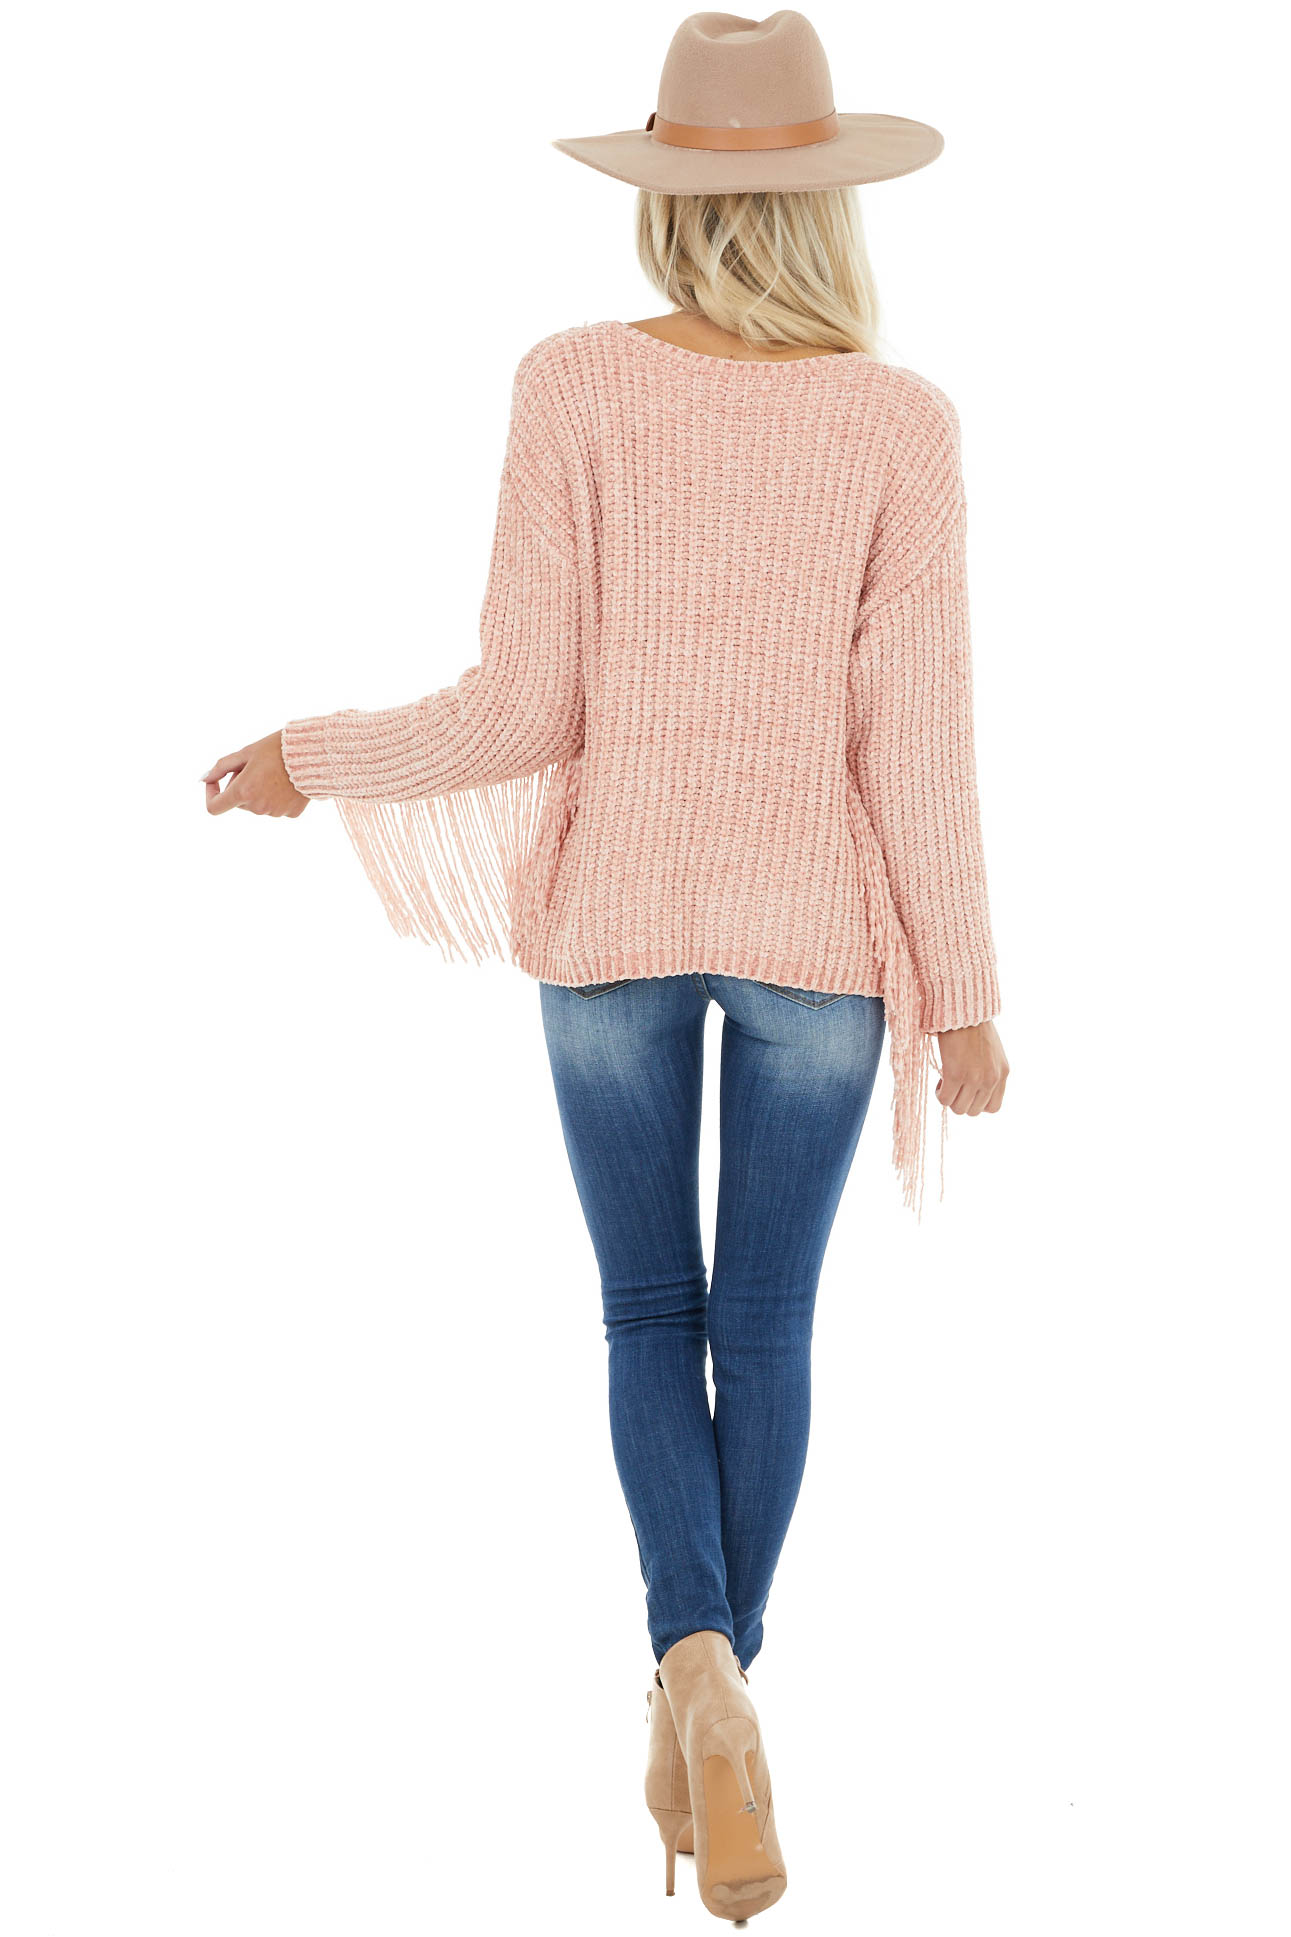 Blush Super Soft Chenille Sweater with Fringe Details